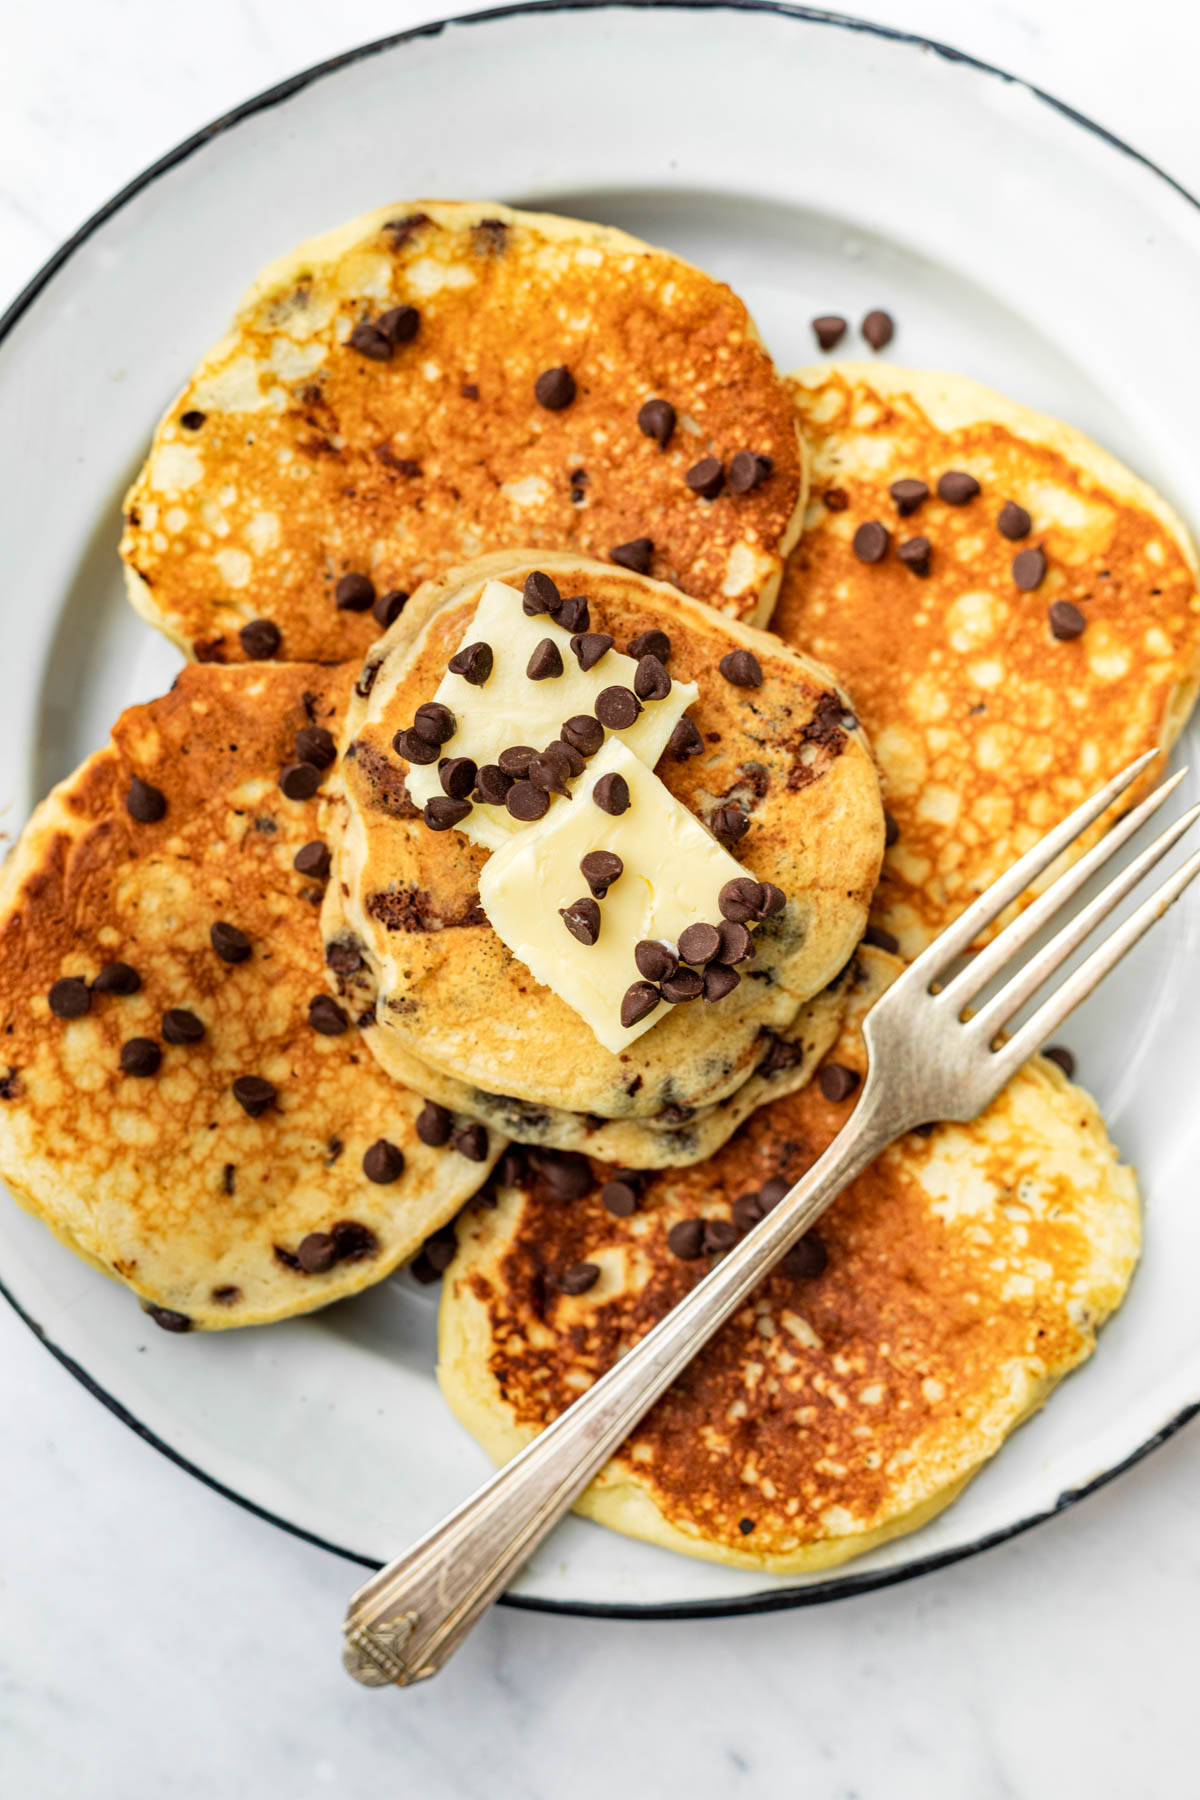 Pancakes on a plate topped with butter and mini chocolate chips.